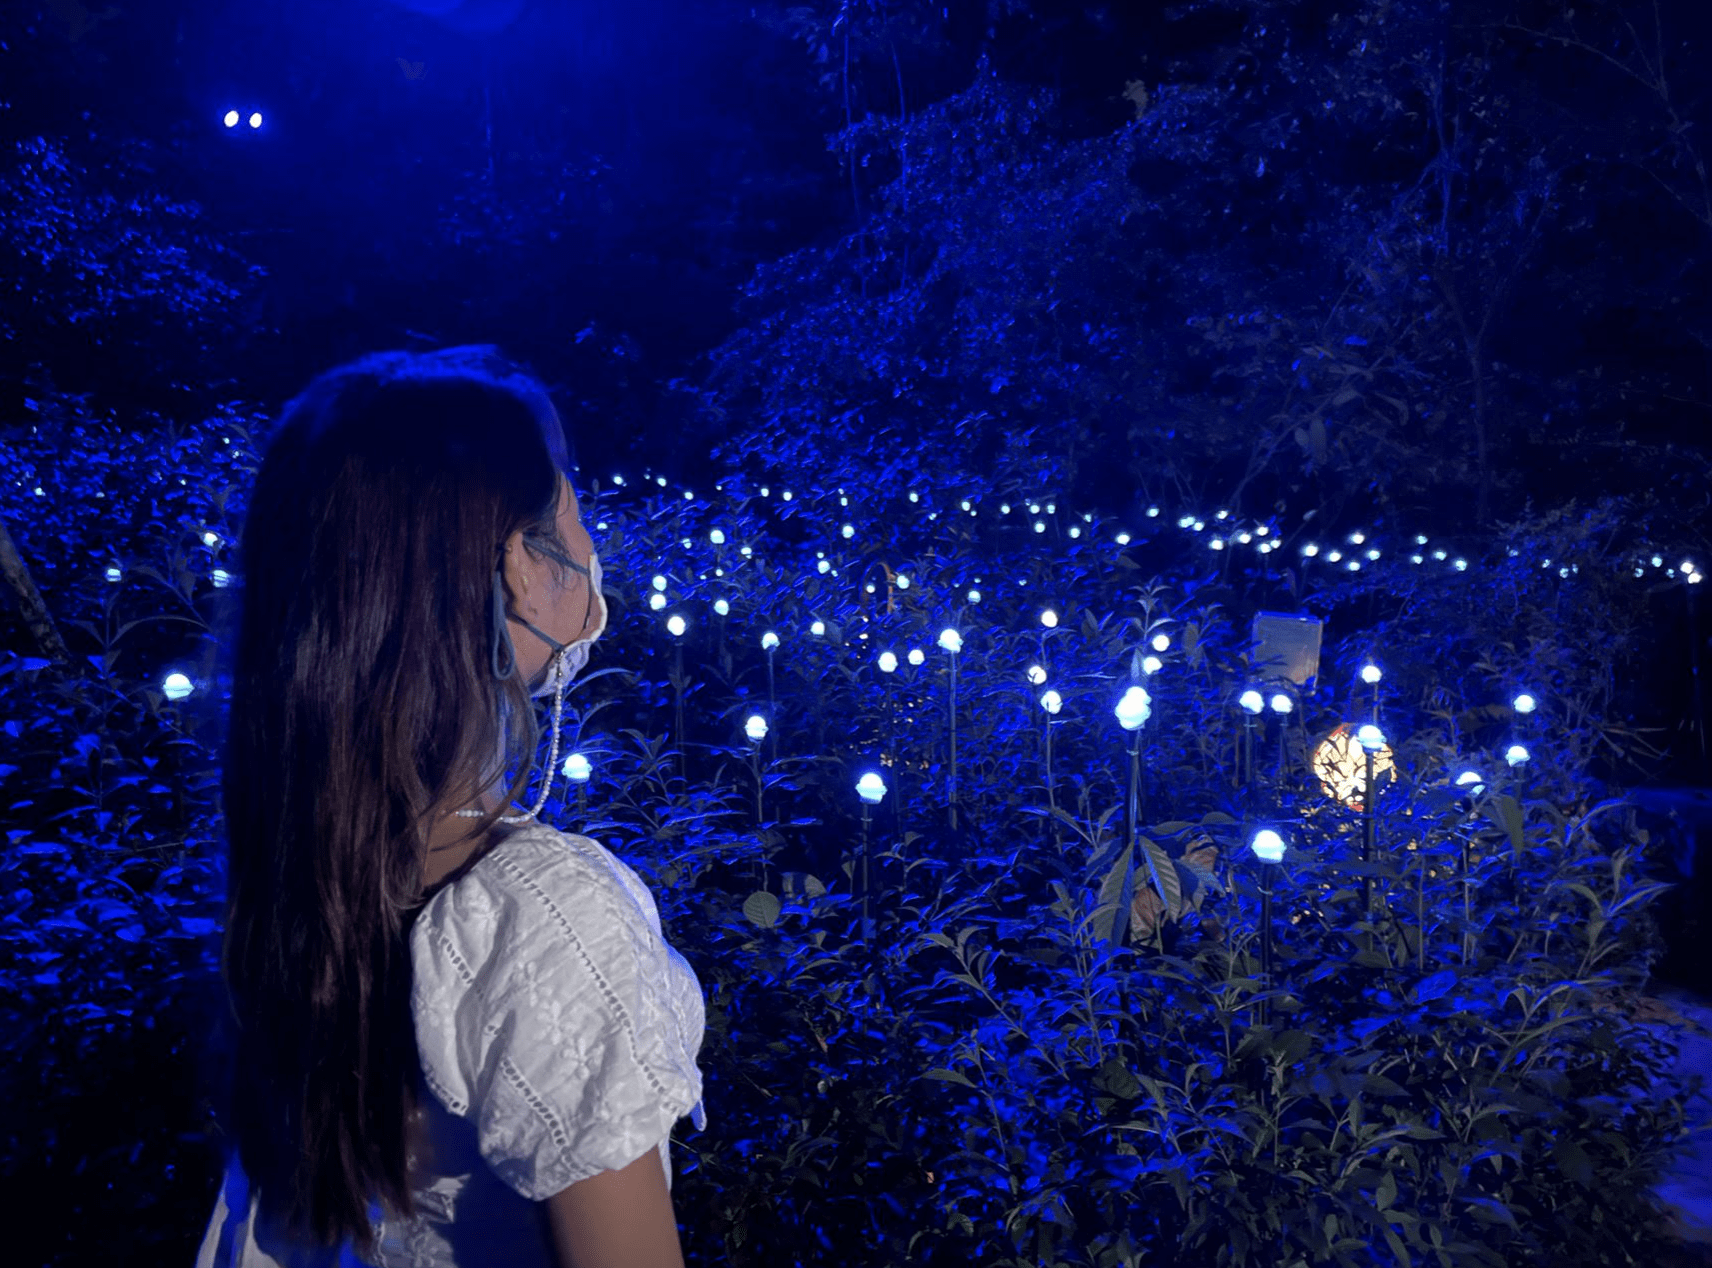 new things to do in july 2021 - Rainforest Lumina